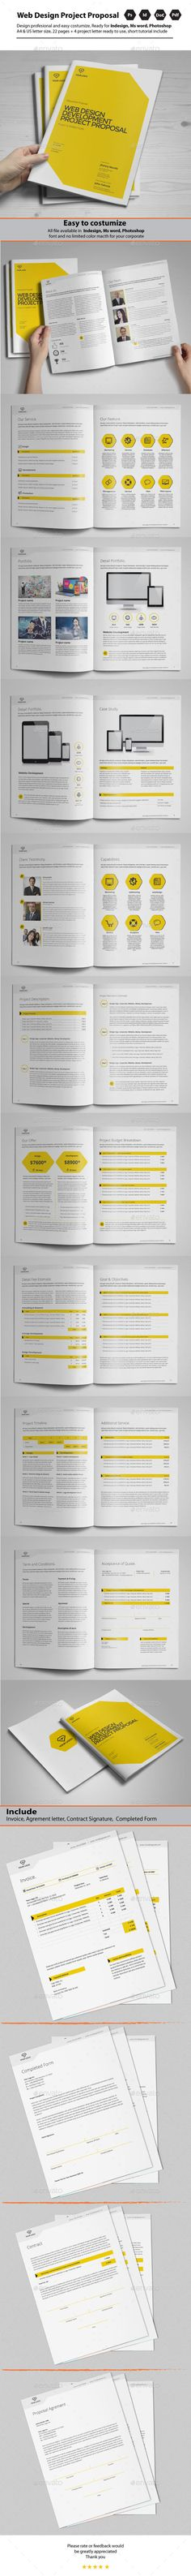 Indesign Business Proposal Template Template Pinterest - proposal form template